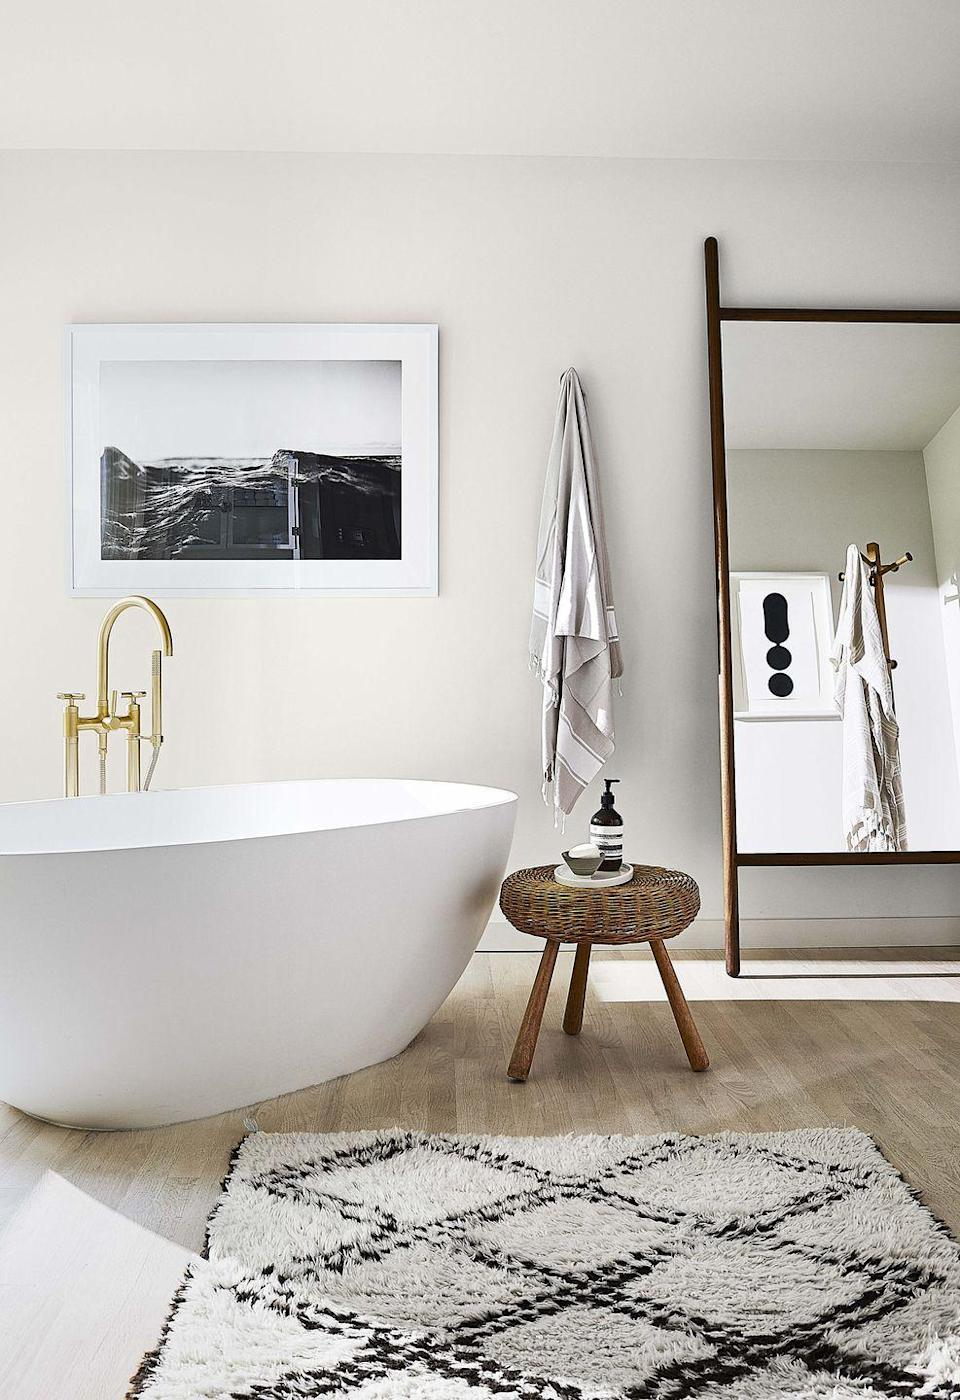 """<p>Analisse Taft-Gersten calls her morning bath at her <a href=""""https://www.housebeautiful.com/design-inspiration/house-tours/a31157783/annalise-taft-gersten-connecticut-home/"""" rel=""""nofollow noopener"""" target=""""_blank"""" data-ylk=""""slk:Connecticut weekend home"""" class=""""link rapid-noclick-resp"""">Connecticut weekend home</a> the best part of her day—and it's easy to see why. The serene space was inspired by spas at her favorite hotels. </p>"""